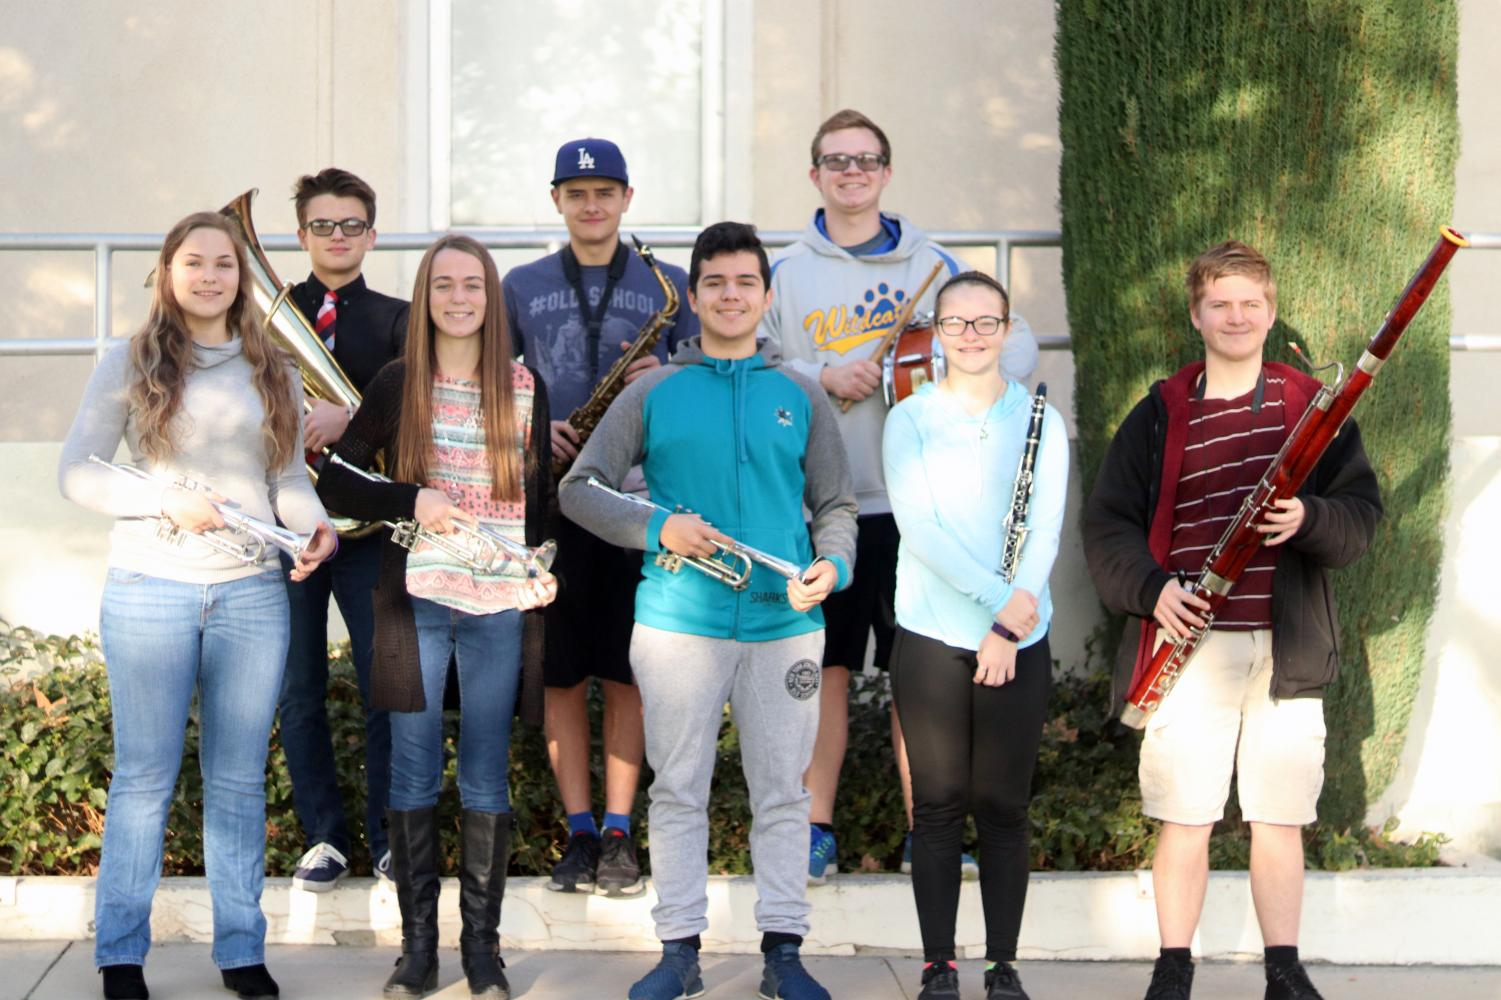 Honor Band and Orchestra participants Ricky Posey, Dennis Posey, Tanner Ashmore, Taylor Reed, Kylie Campbell, Luis Moncada, Raygan Wescott, and Nathaniel Morris